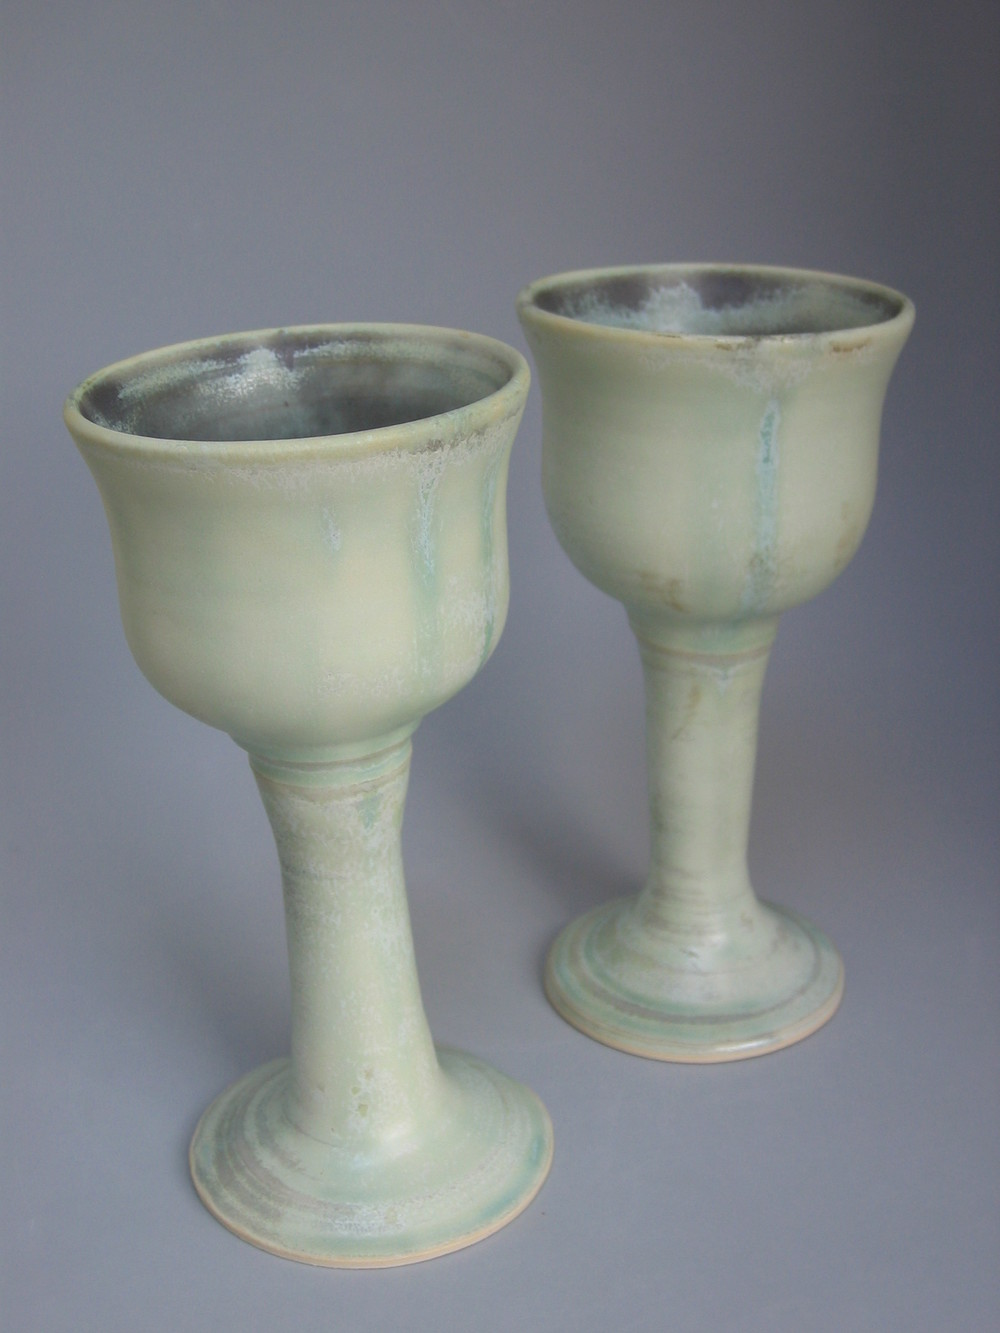 2 Green Goblets $20 each